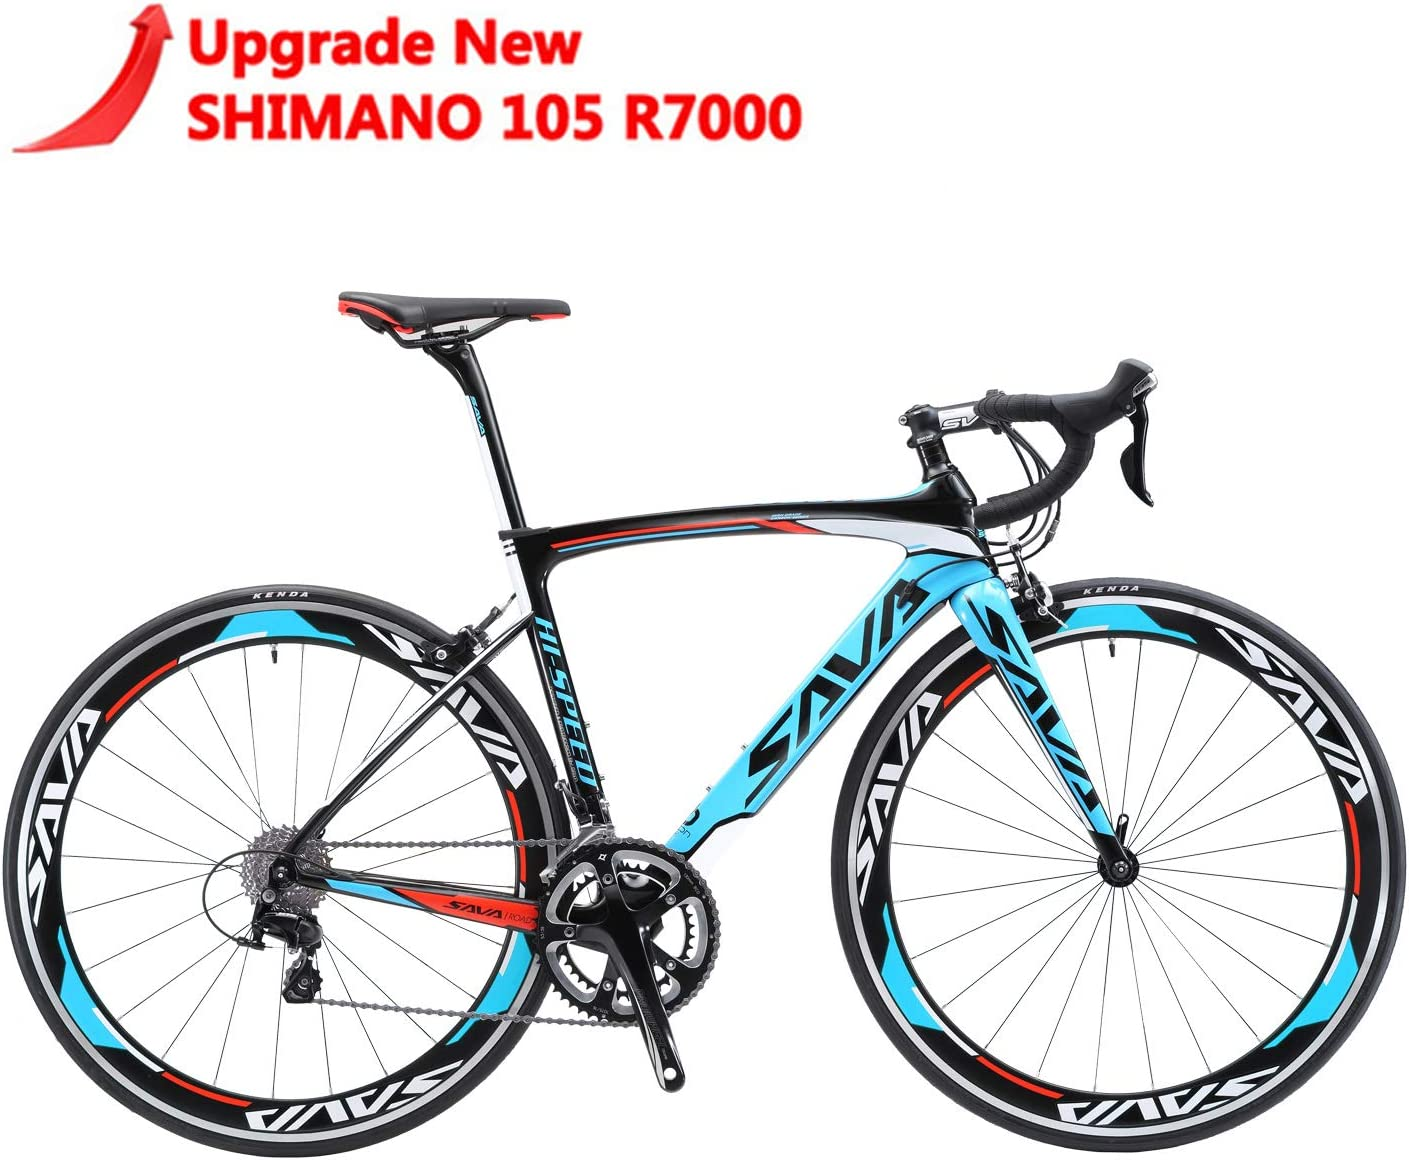 Best road bikes under 2000: SAVADECK Windwar5.0 Carbon Fiber 700C Road Bicycle